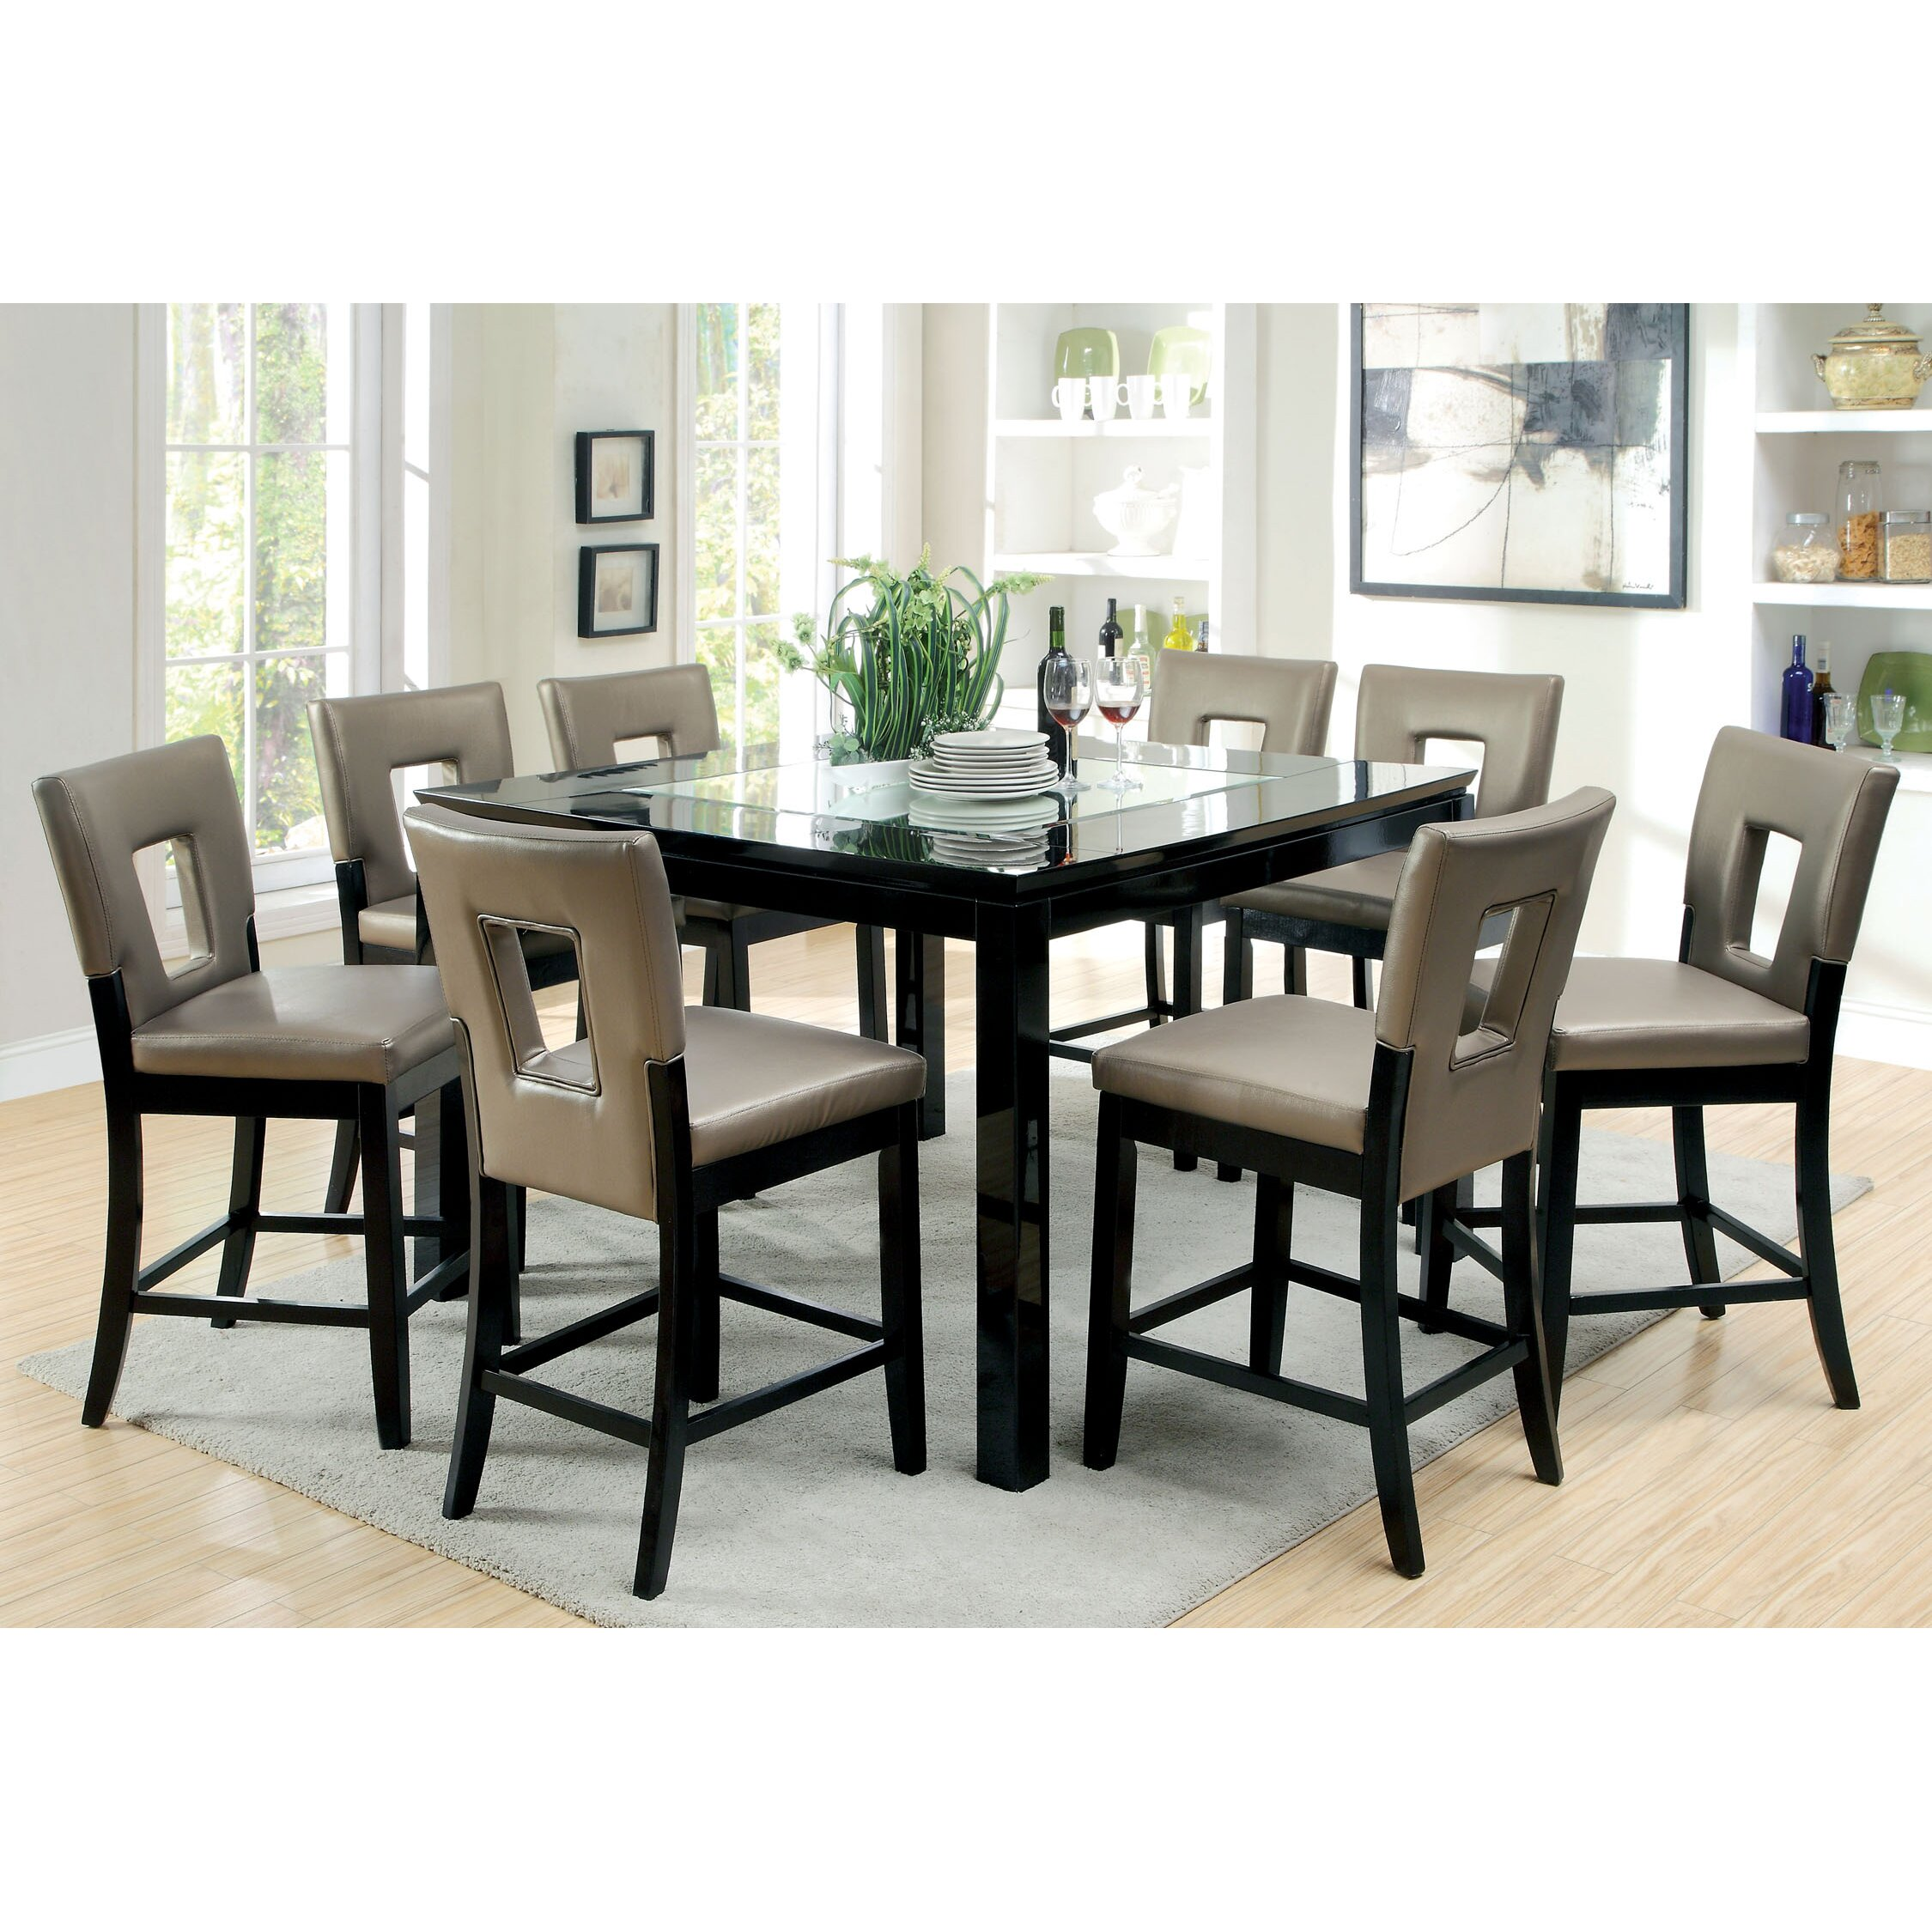 Hokku designs vanderbilte 9 piece counter height dining Dining set design ideas